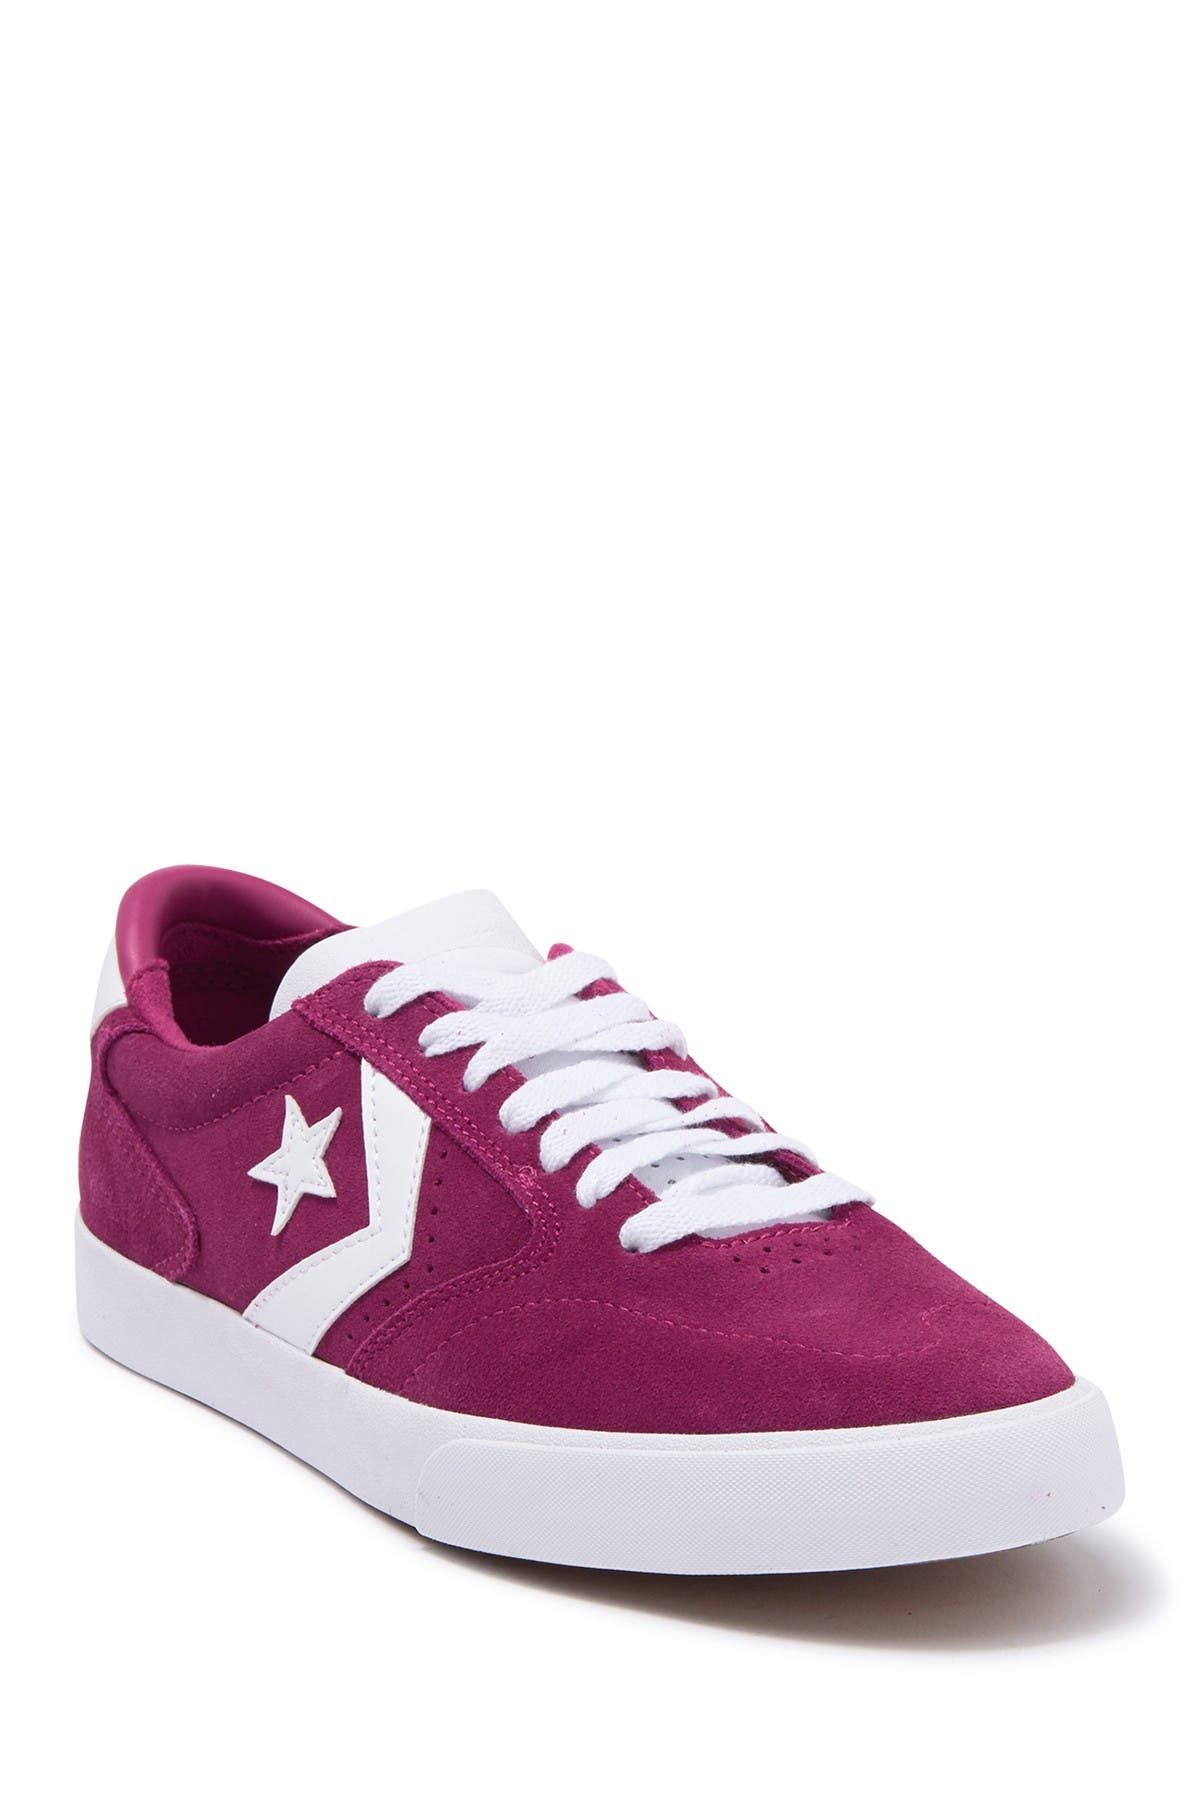 Image of Converse Checkpoint Pro Oxford Sneaker